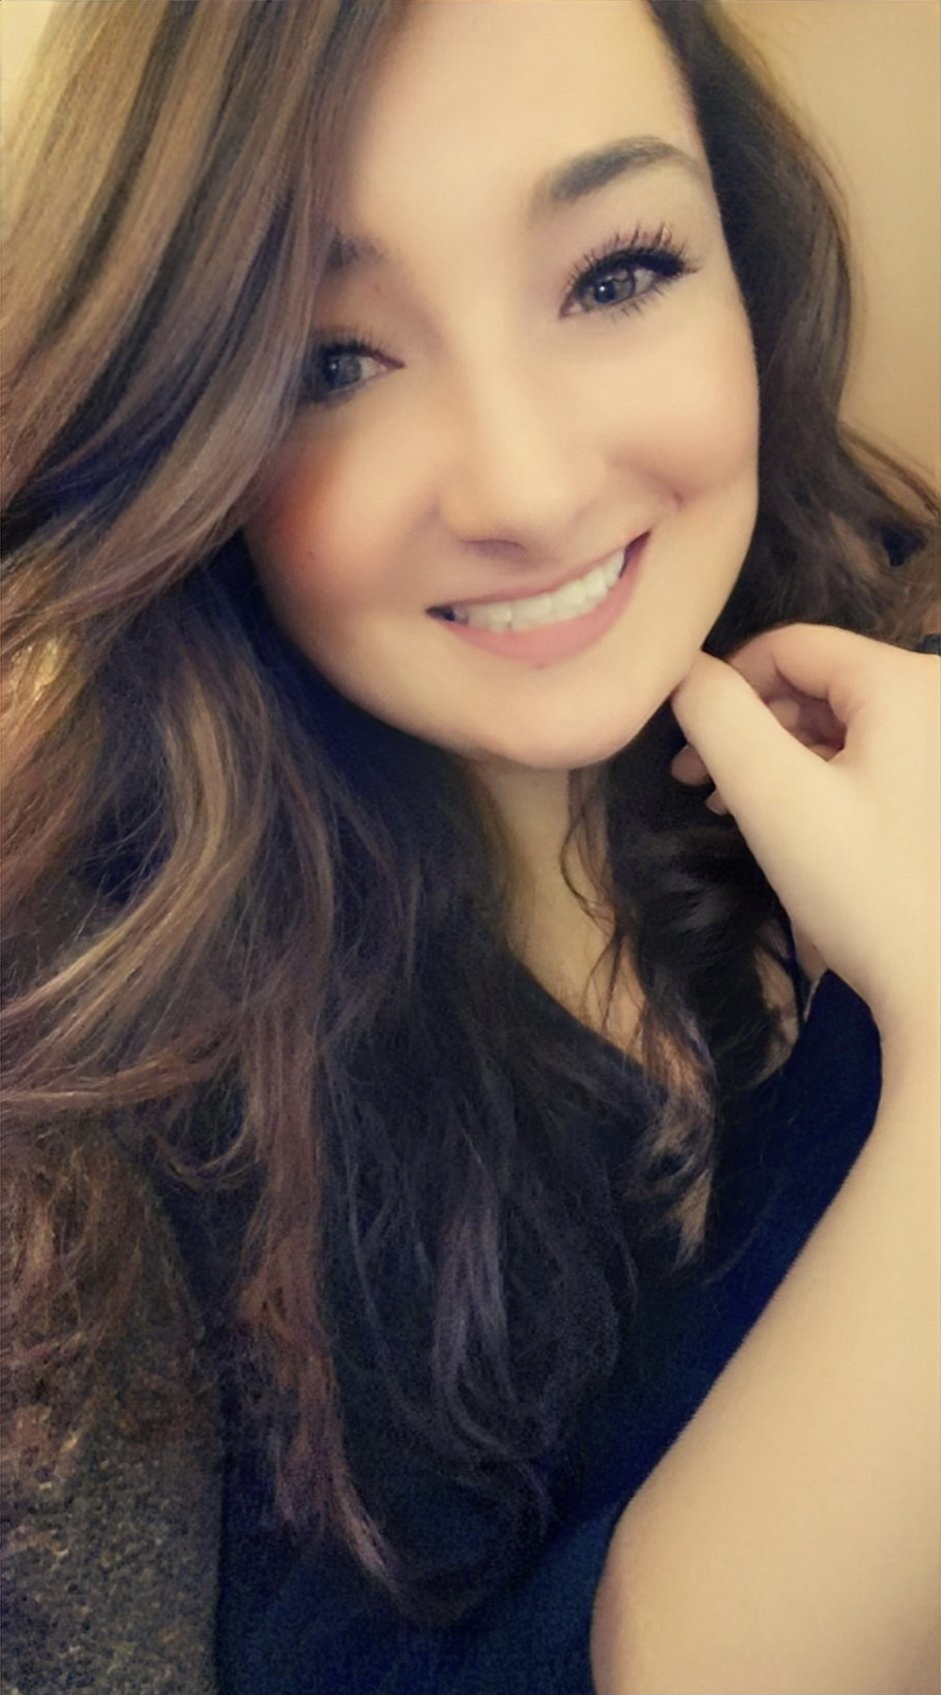 26-year-old, Single From: Crawfordsville , In, United States